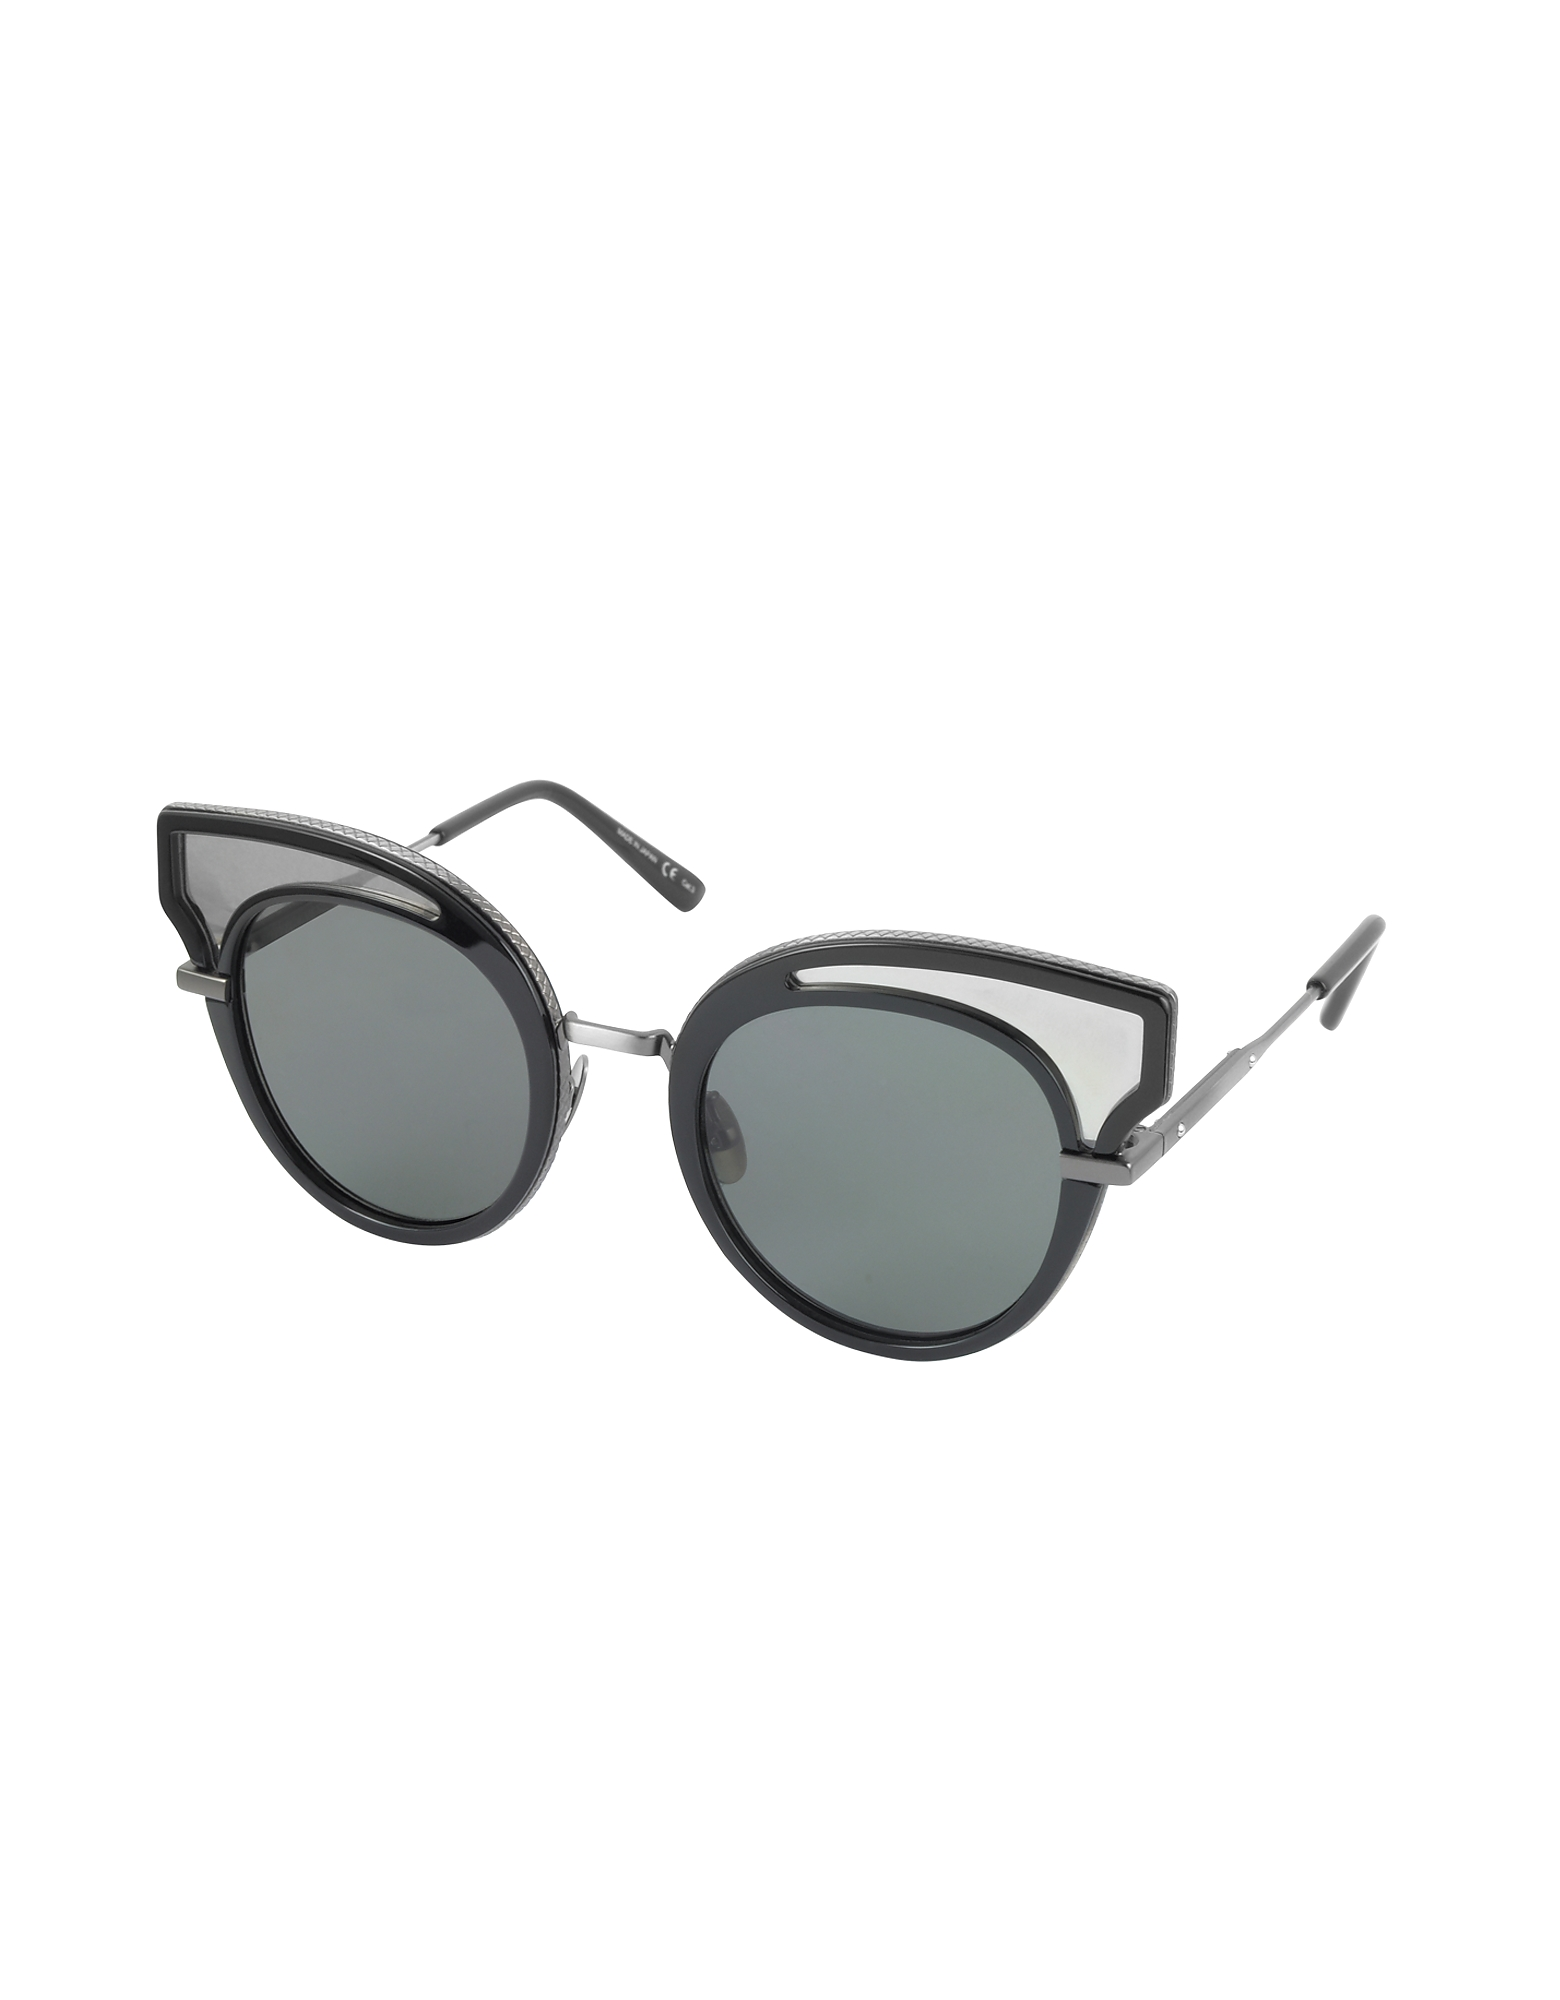 BV0094S Acetate Cat Eye Women's Sunglasses от Forzieri.com INT